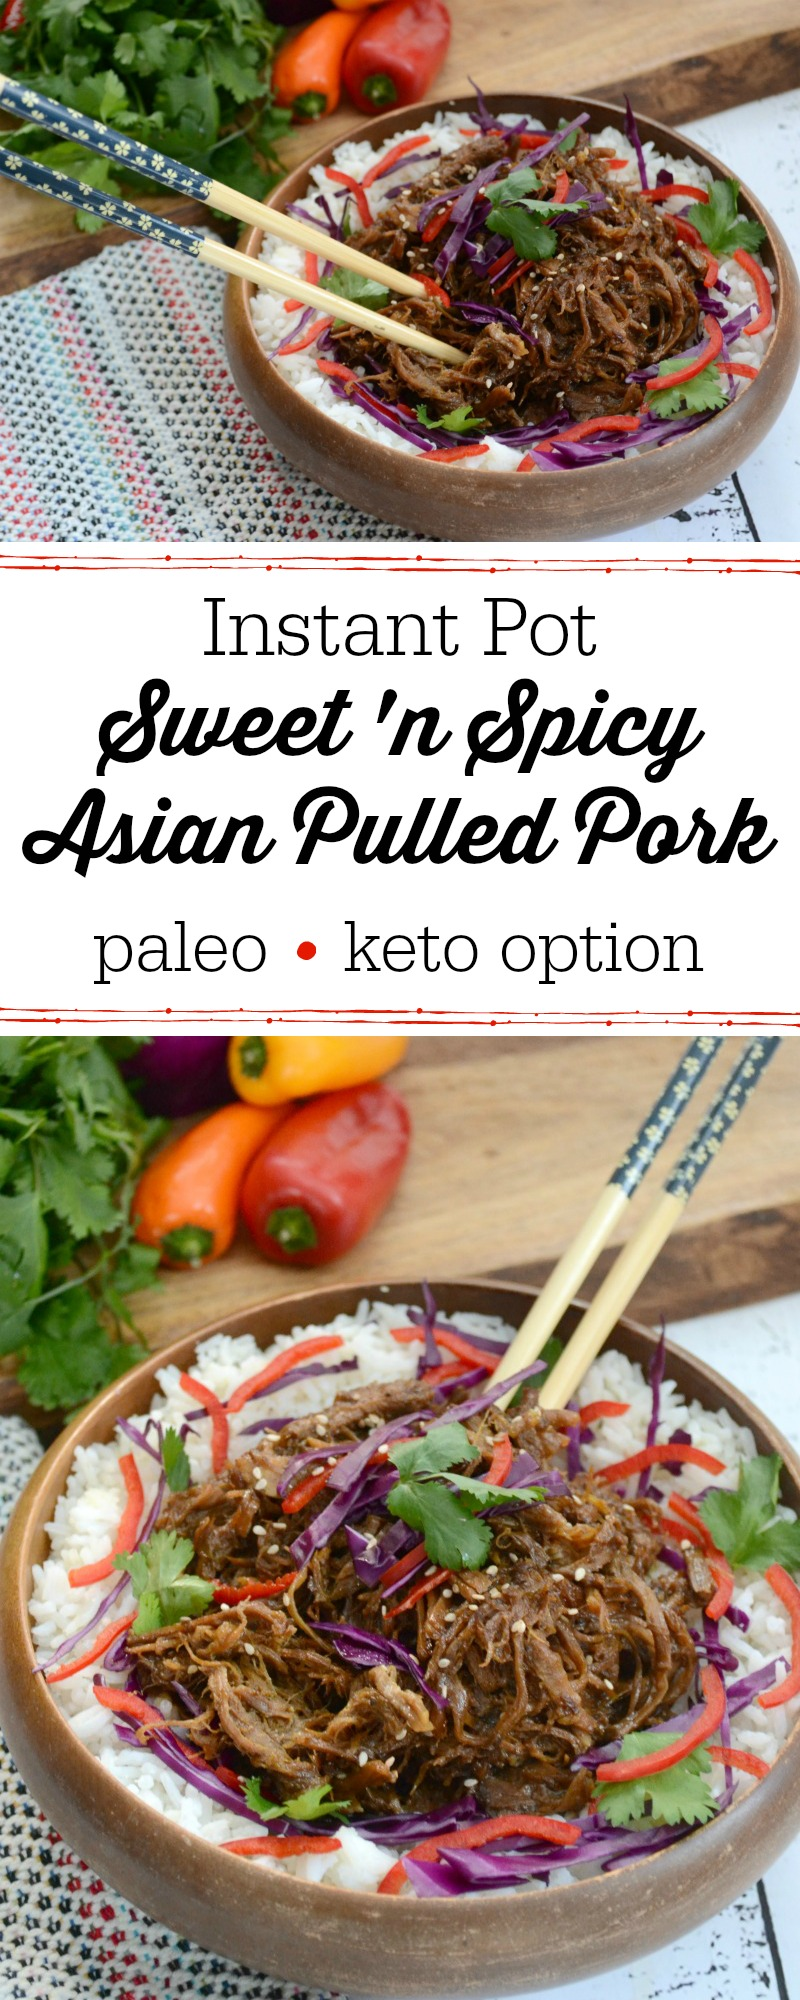 wooden bowl of instant pot sweet 'n spicy asian pulled pork with chopsticks